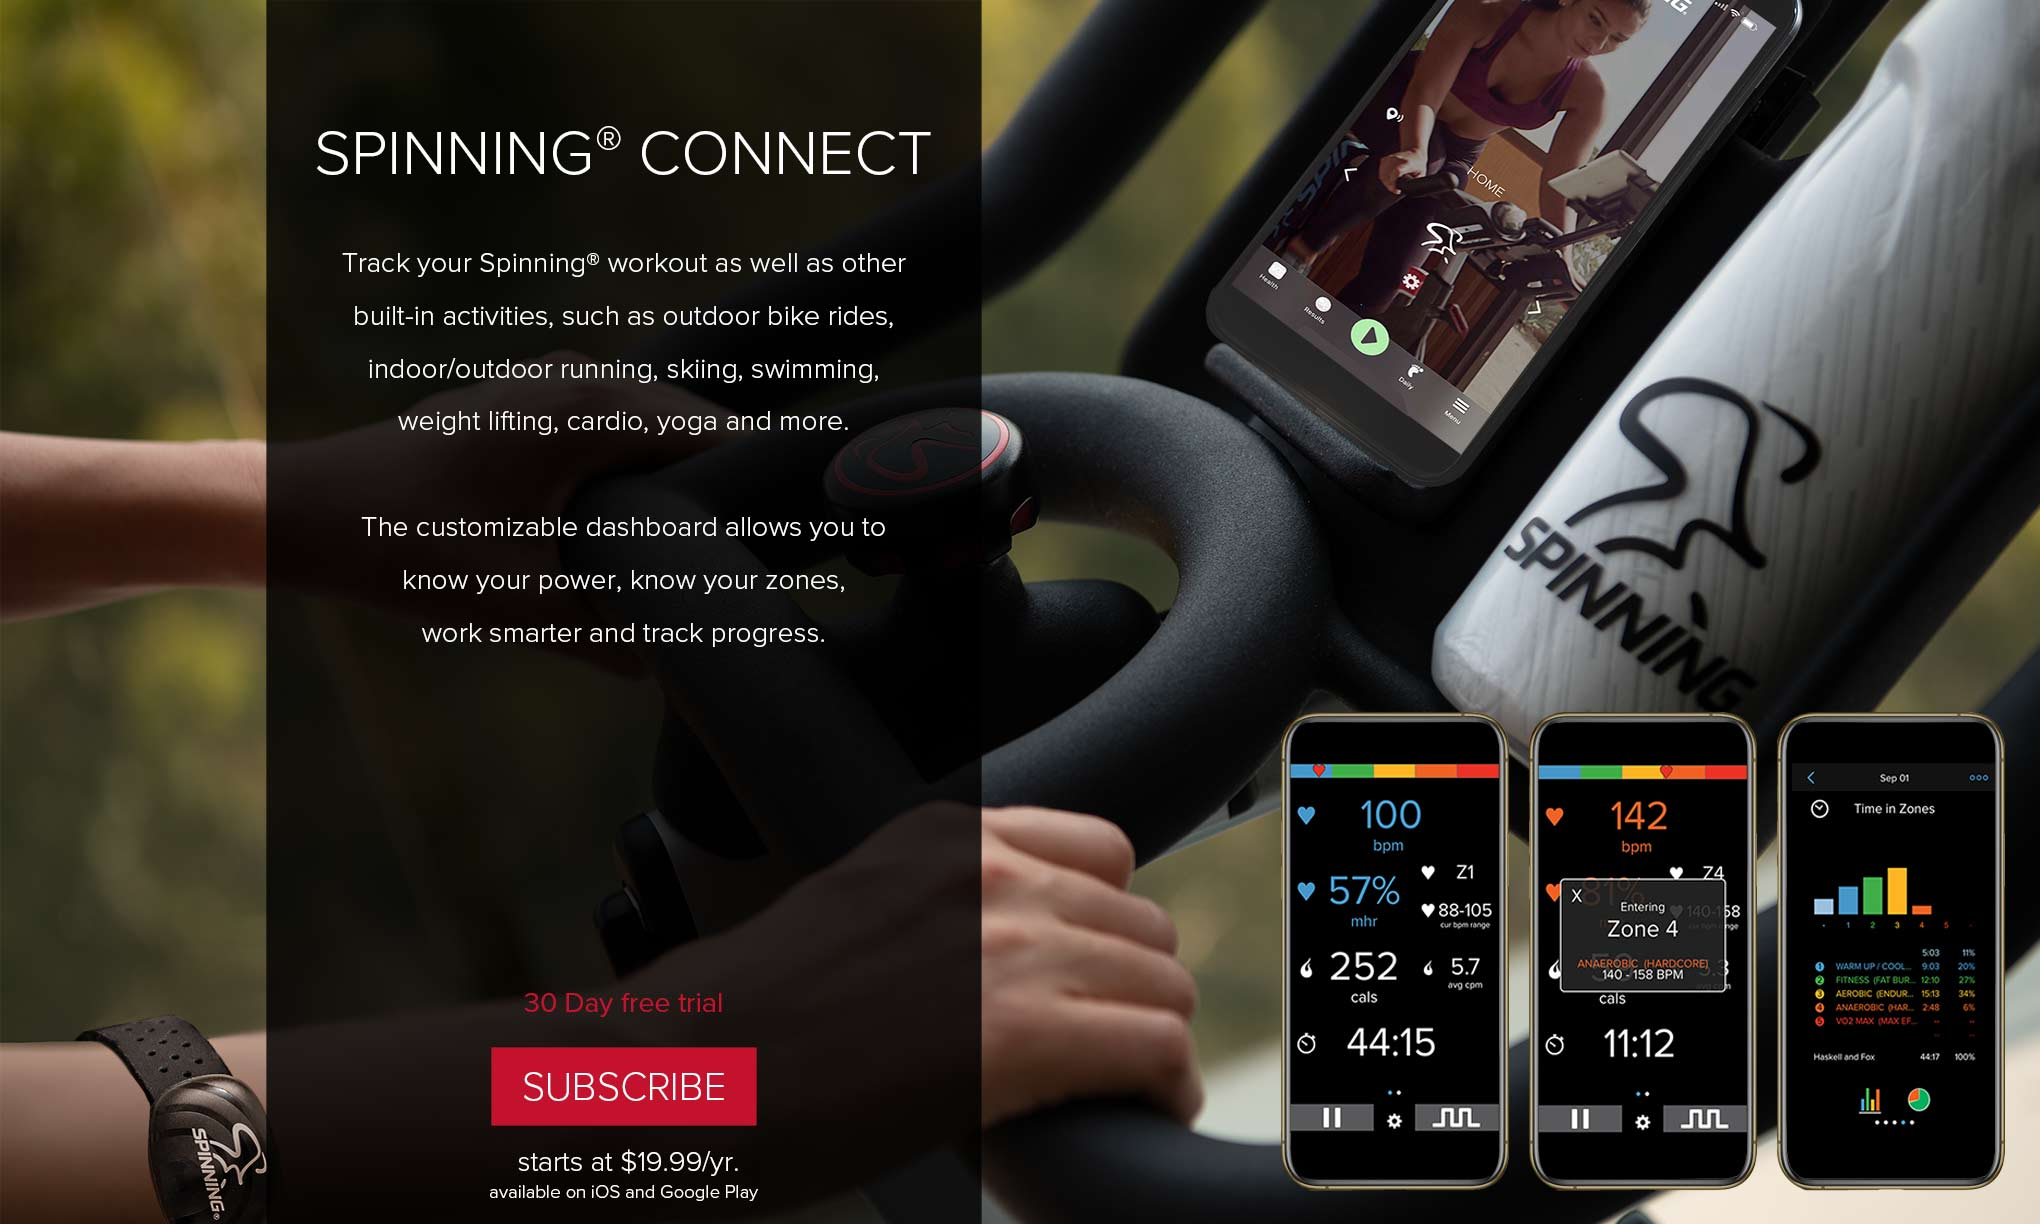 Spinning® Connect - Track your Spinning® workout as well as other built-in activities, such as outdoor bike rides, indoor/outdoor running, skiing, swimming, weight lifting, cardio, yoga and more. The customizable dashboard allows you to know your power, know your zones, work smarter and track progress. 30 Day free trial. Subscribe - starts at $19.99/yr